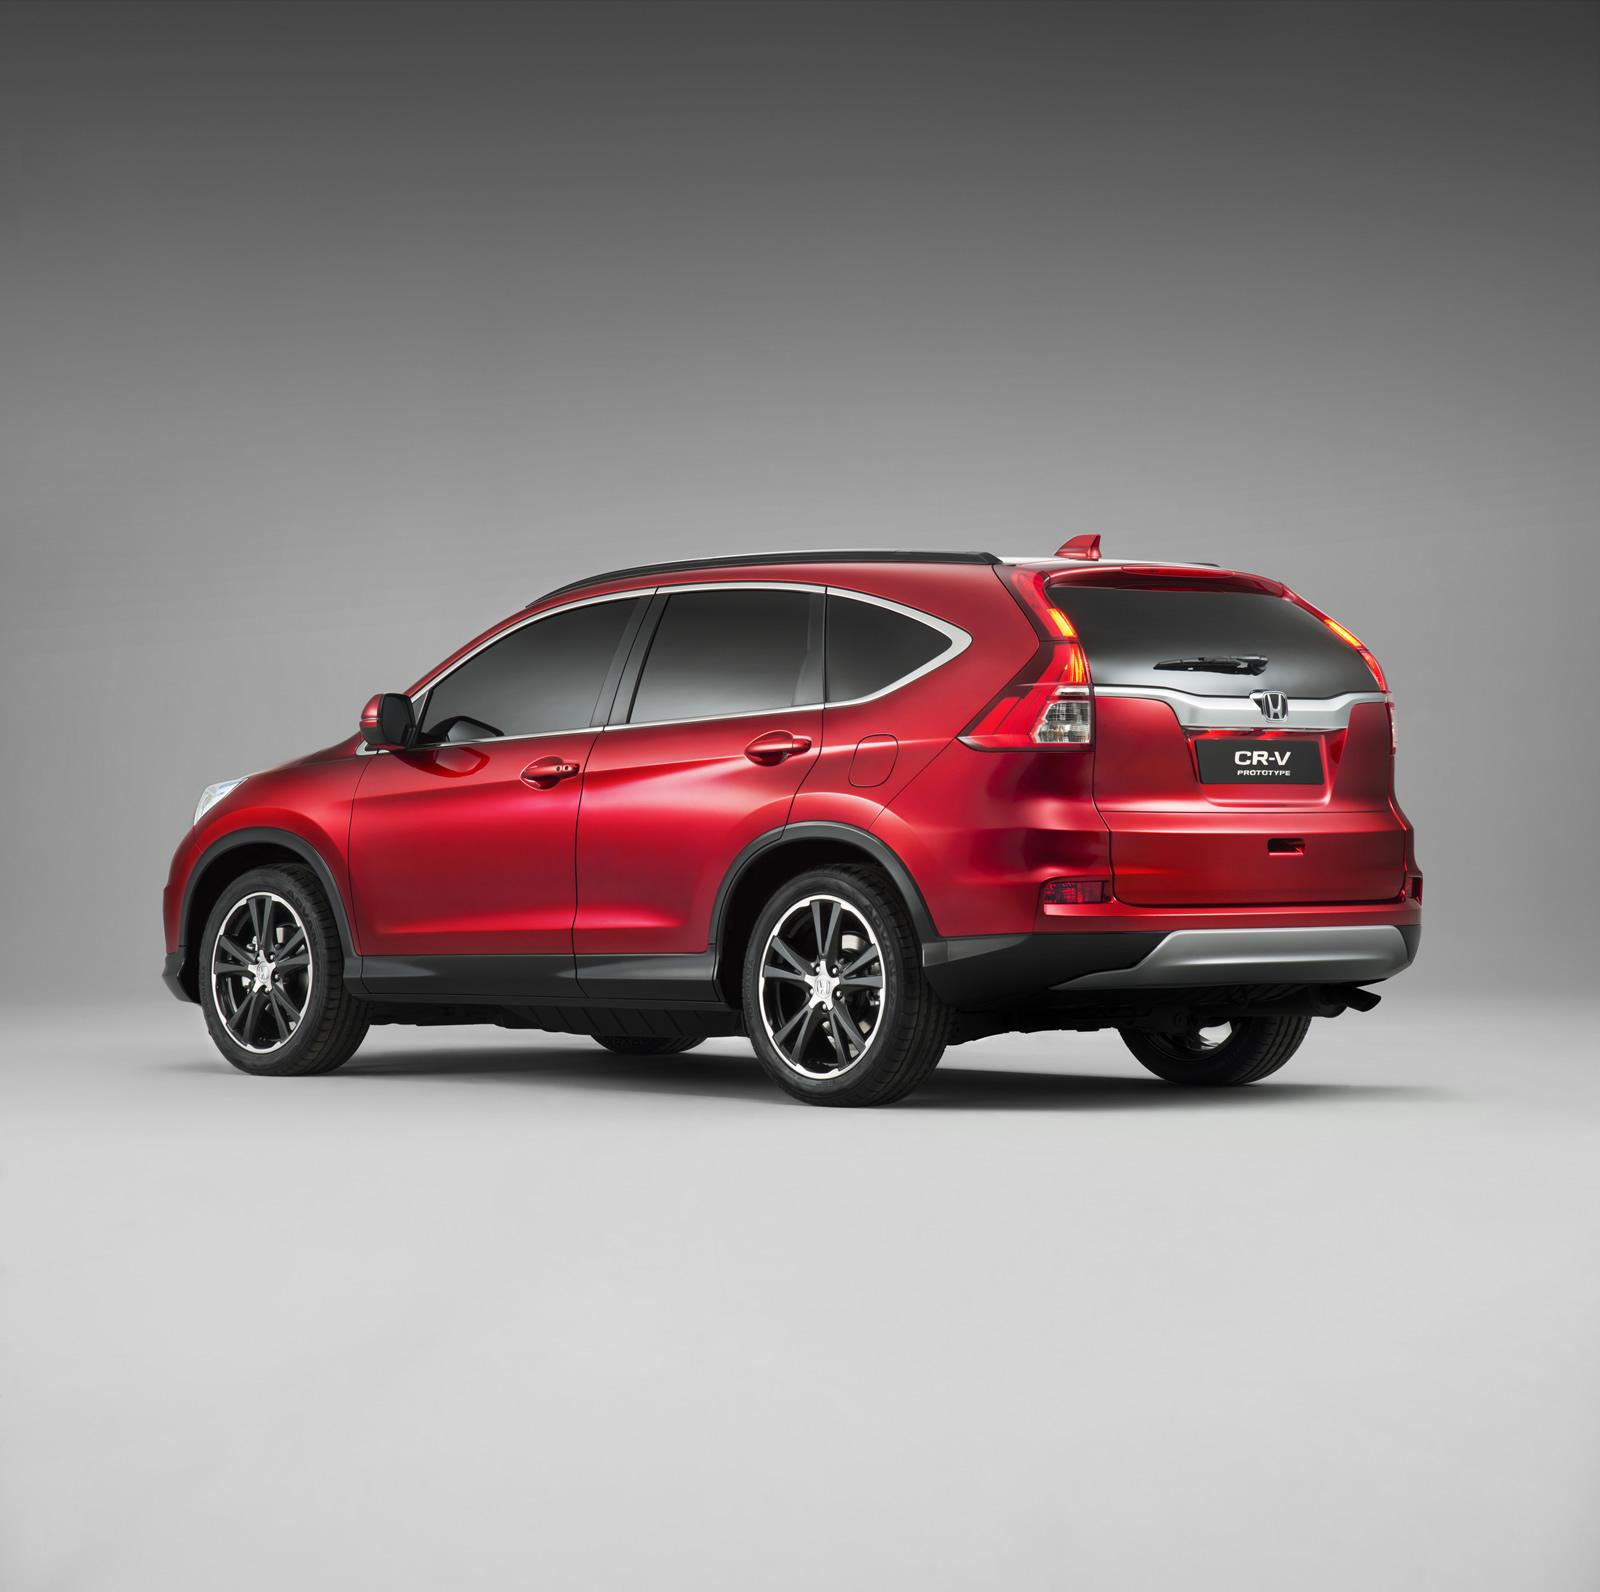 euro spec 2015 honda cr v facelift revealed with 160 hp 1 6 liter diesel engine autoevolution. Black Bedroom Furniture Sets. Home Design Ideas